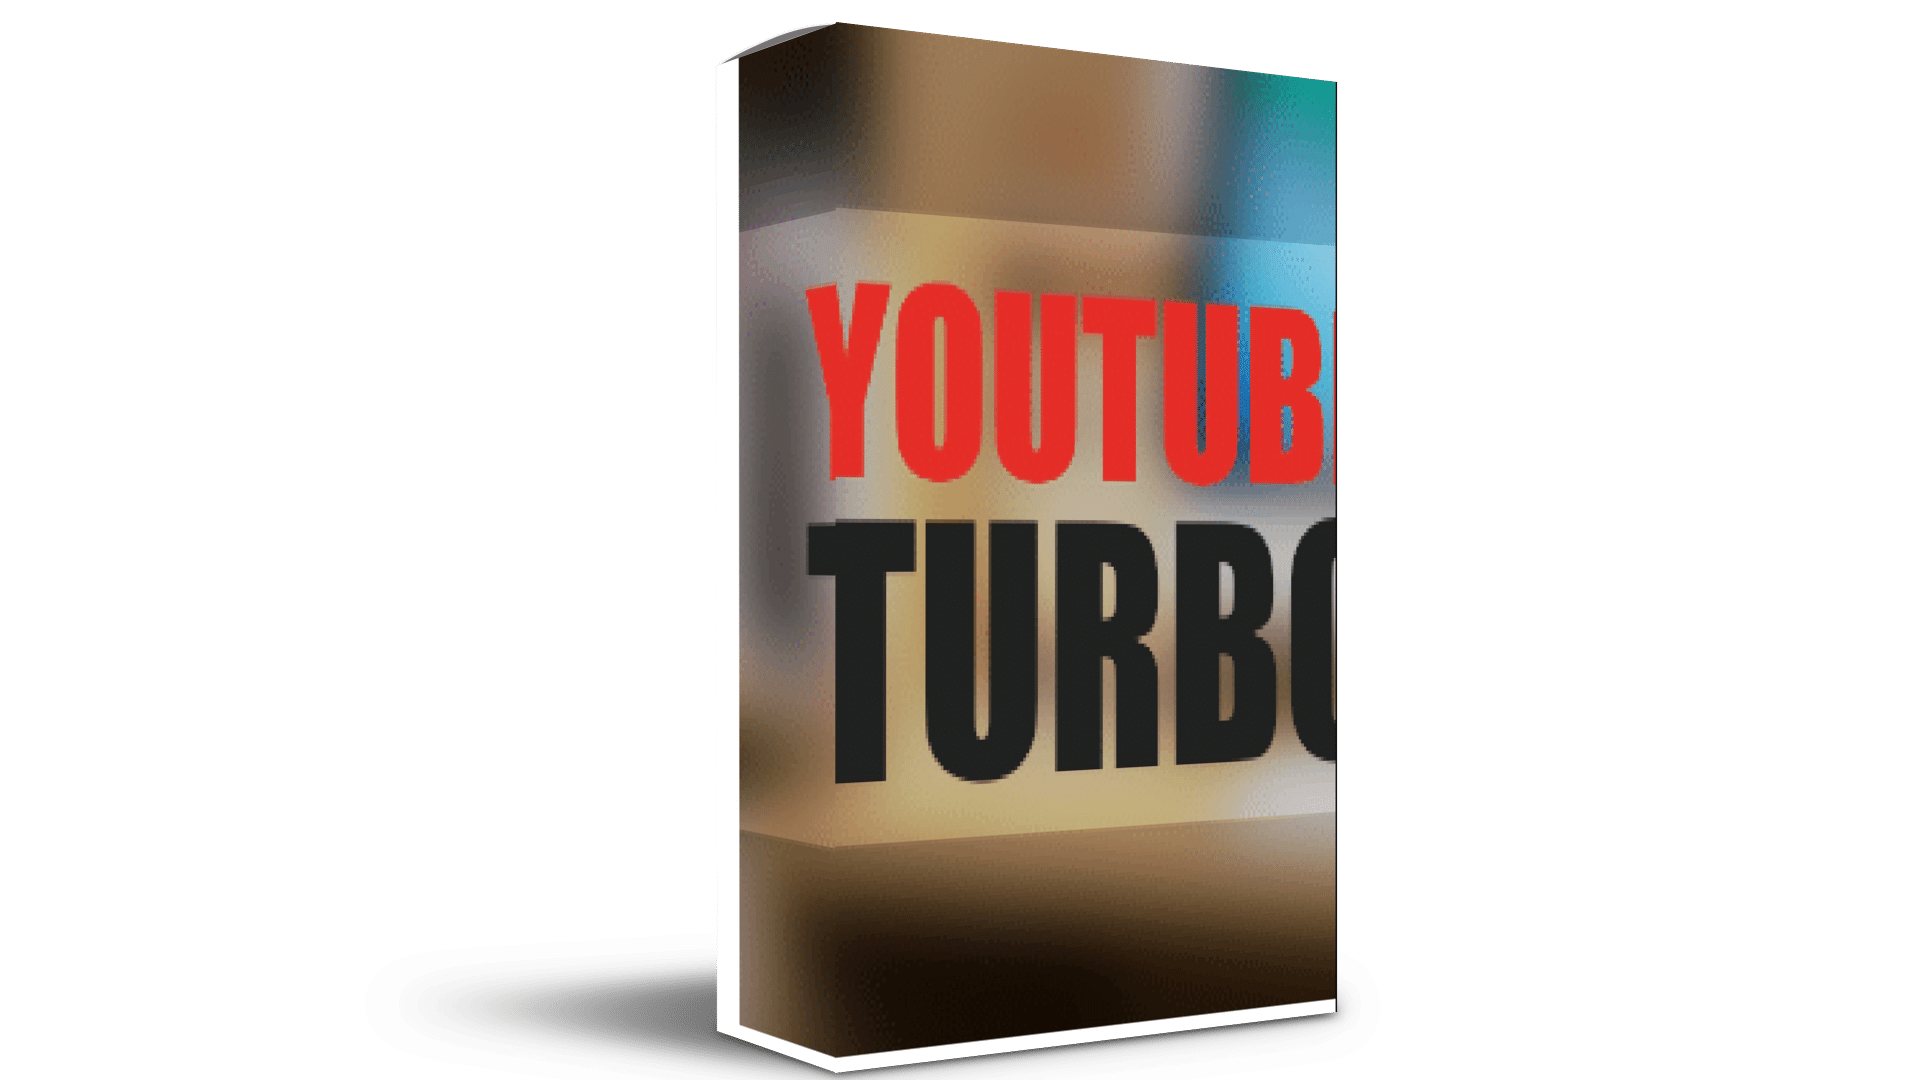 Youtube Turbo